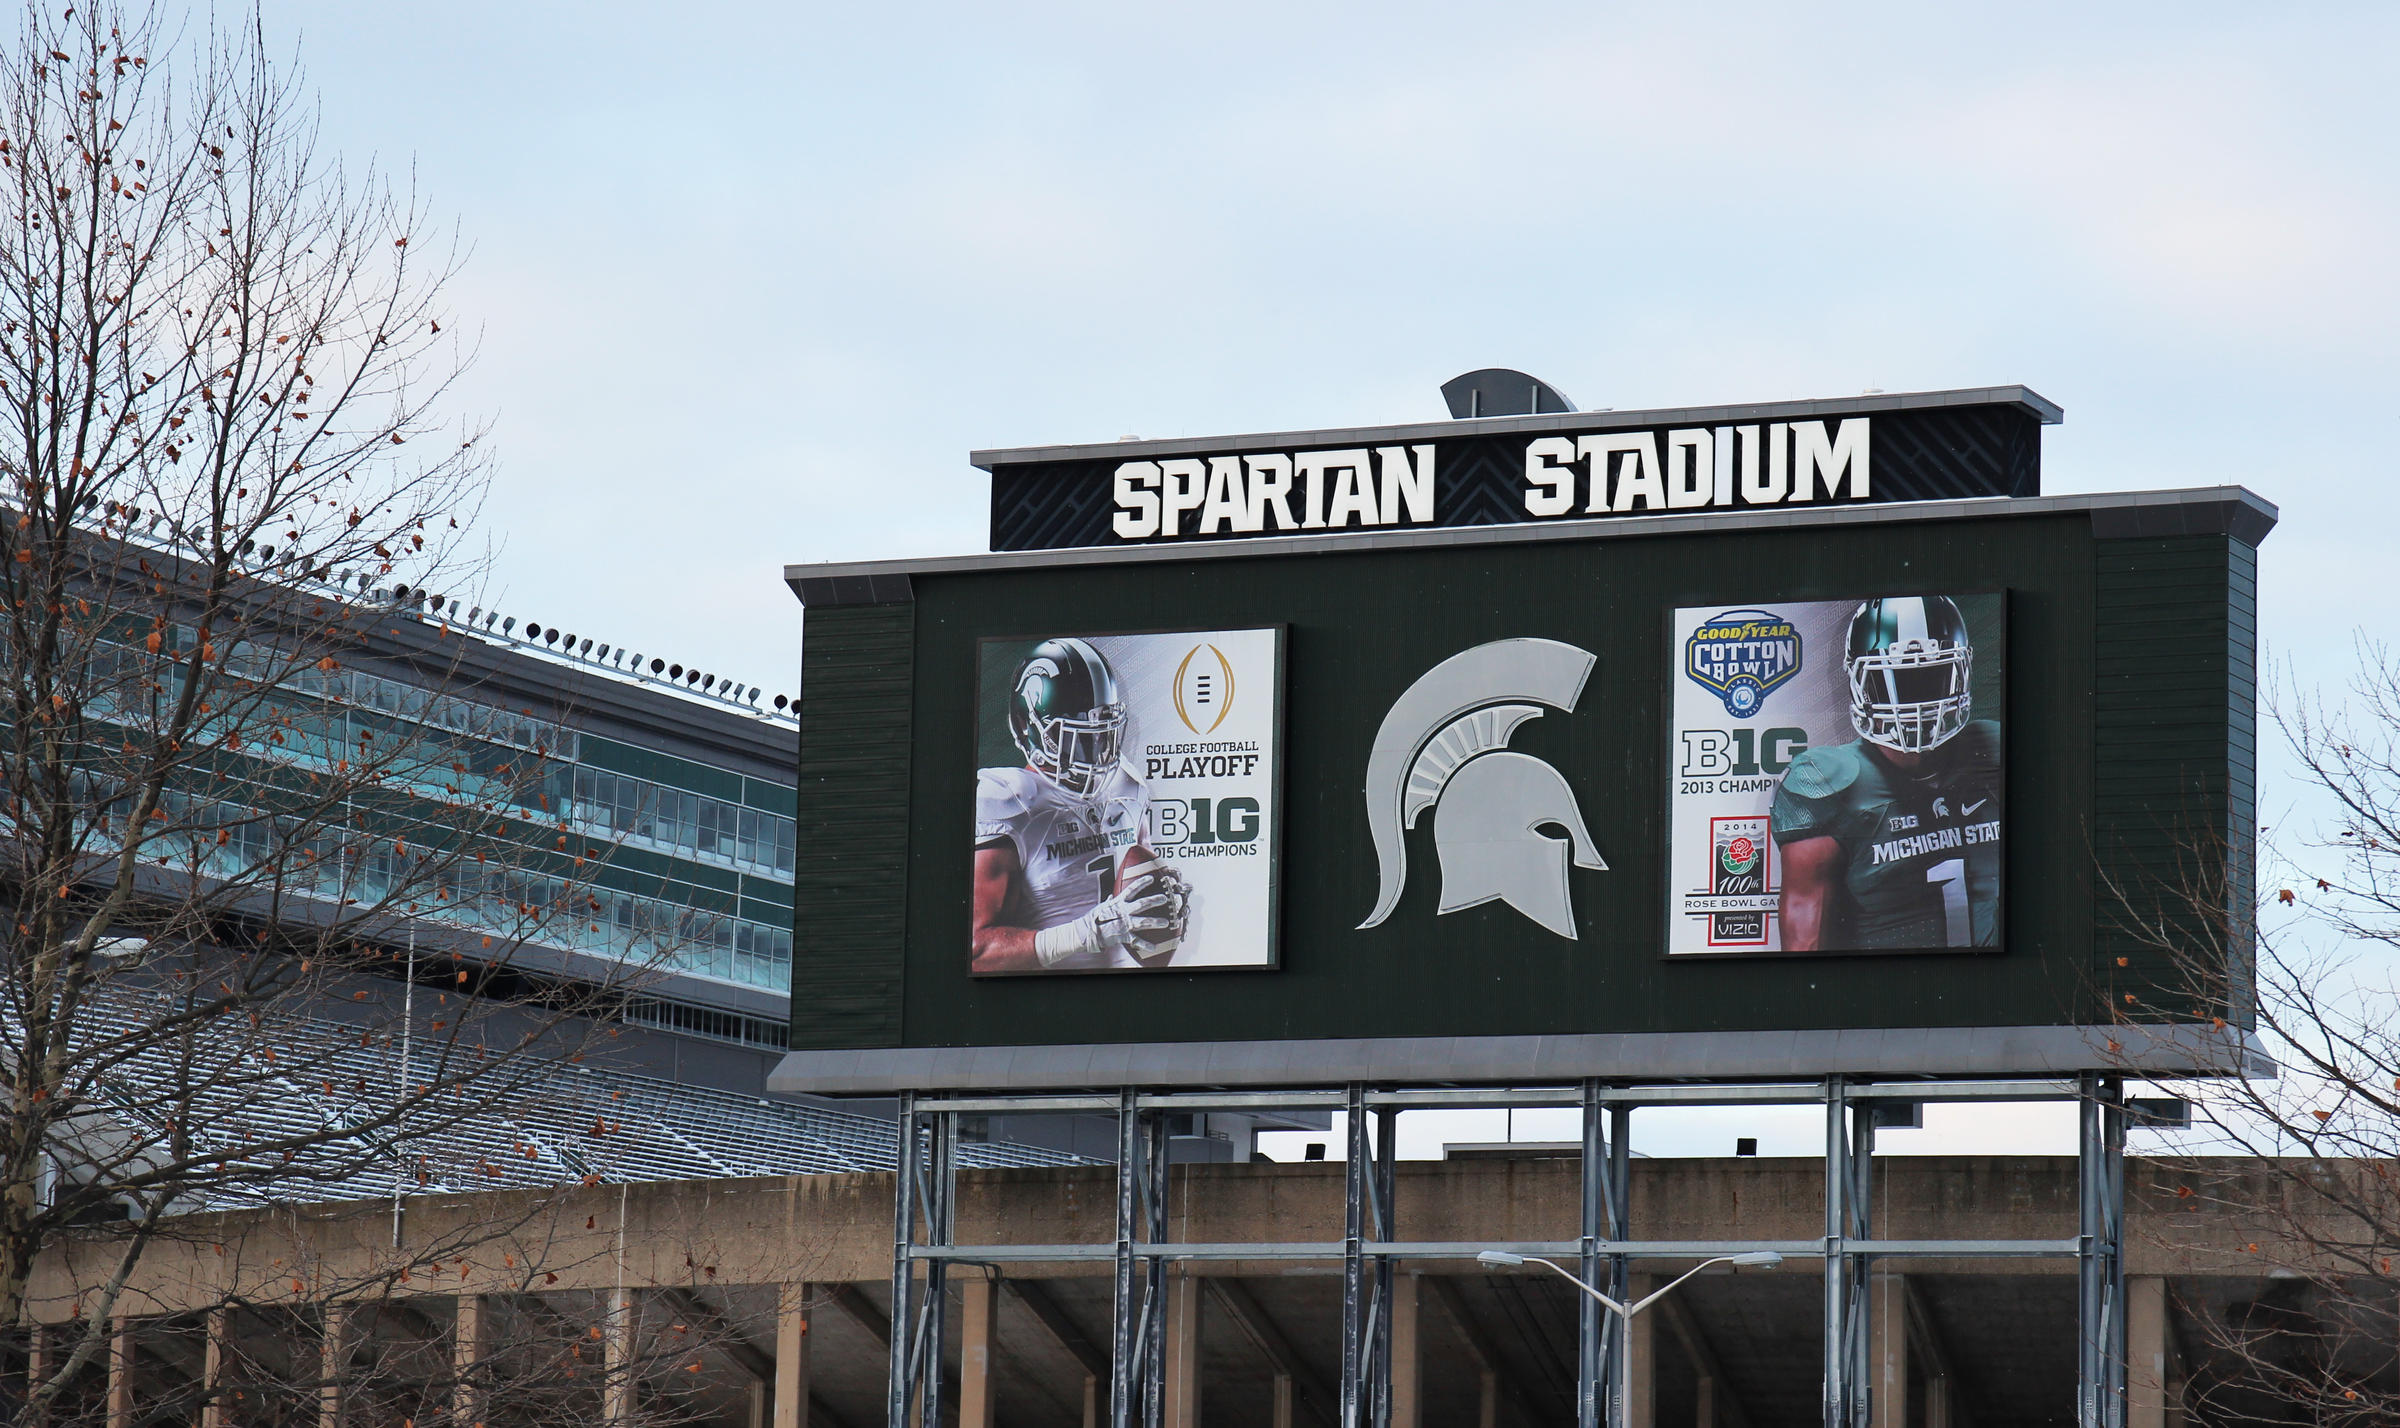 Michigan State Spartans vs. Indiana Hoosiers Preview 02/03/18